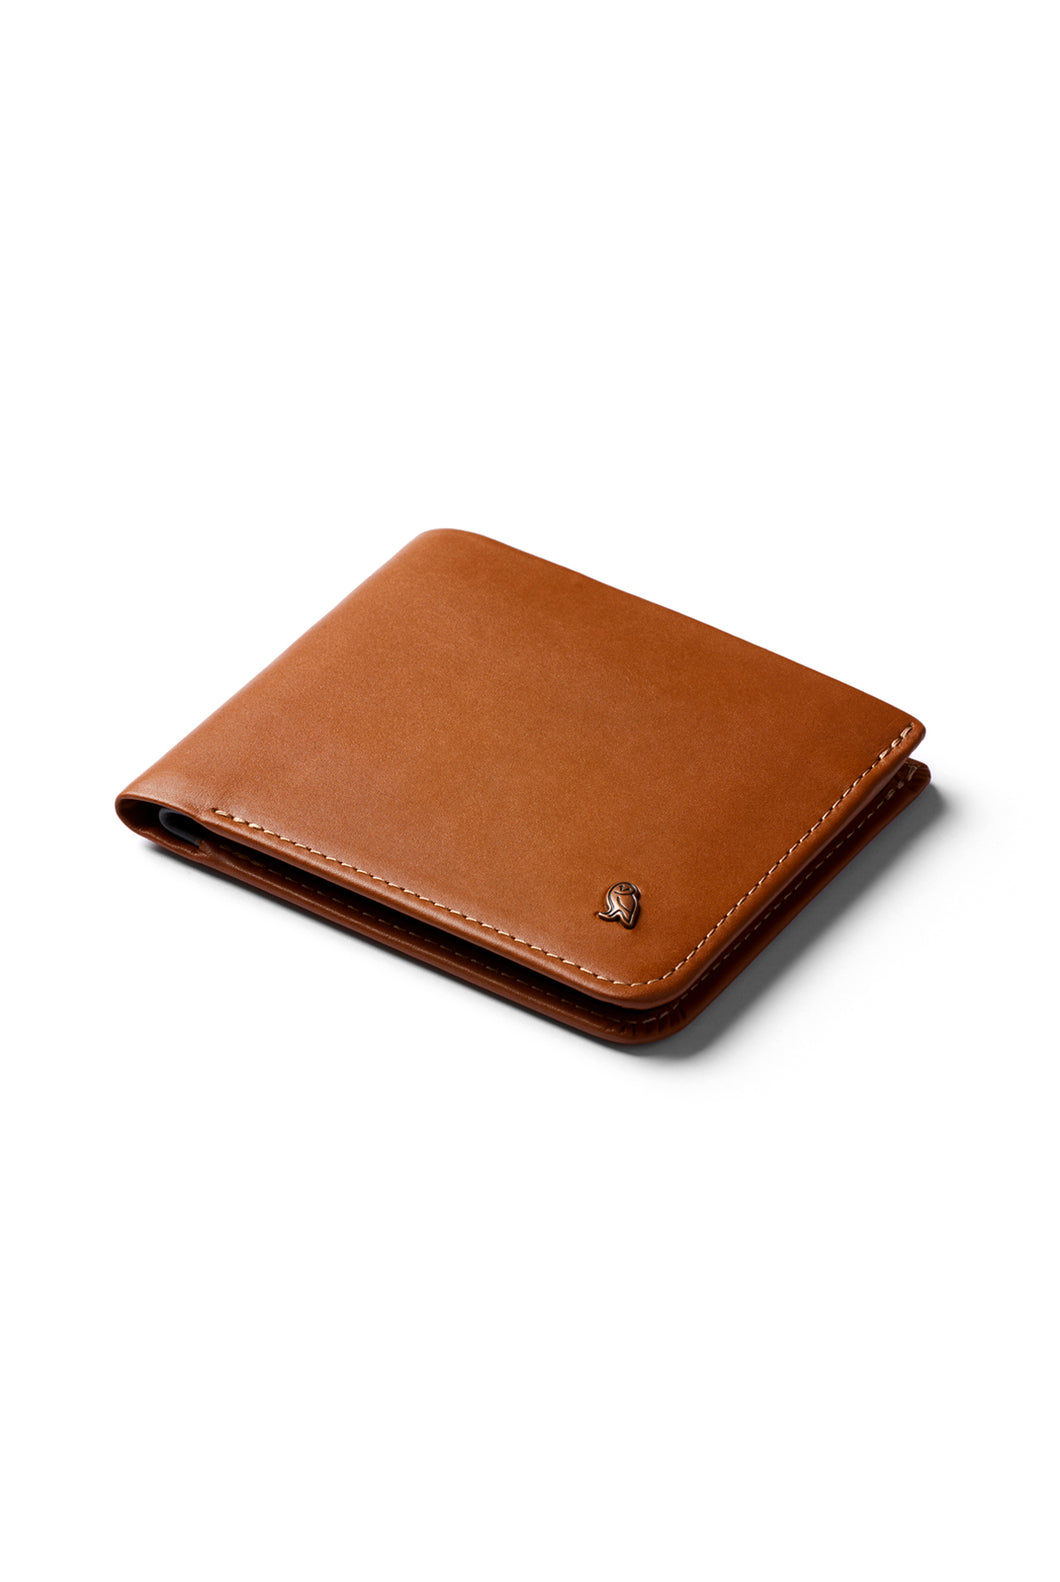 Bellroy - Hide & Seek RFID Wallet - Caramel